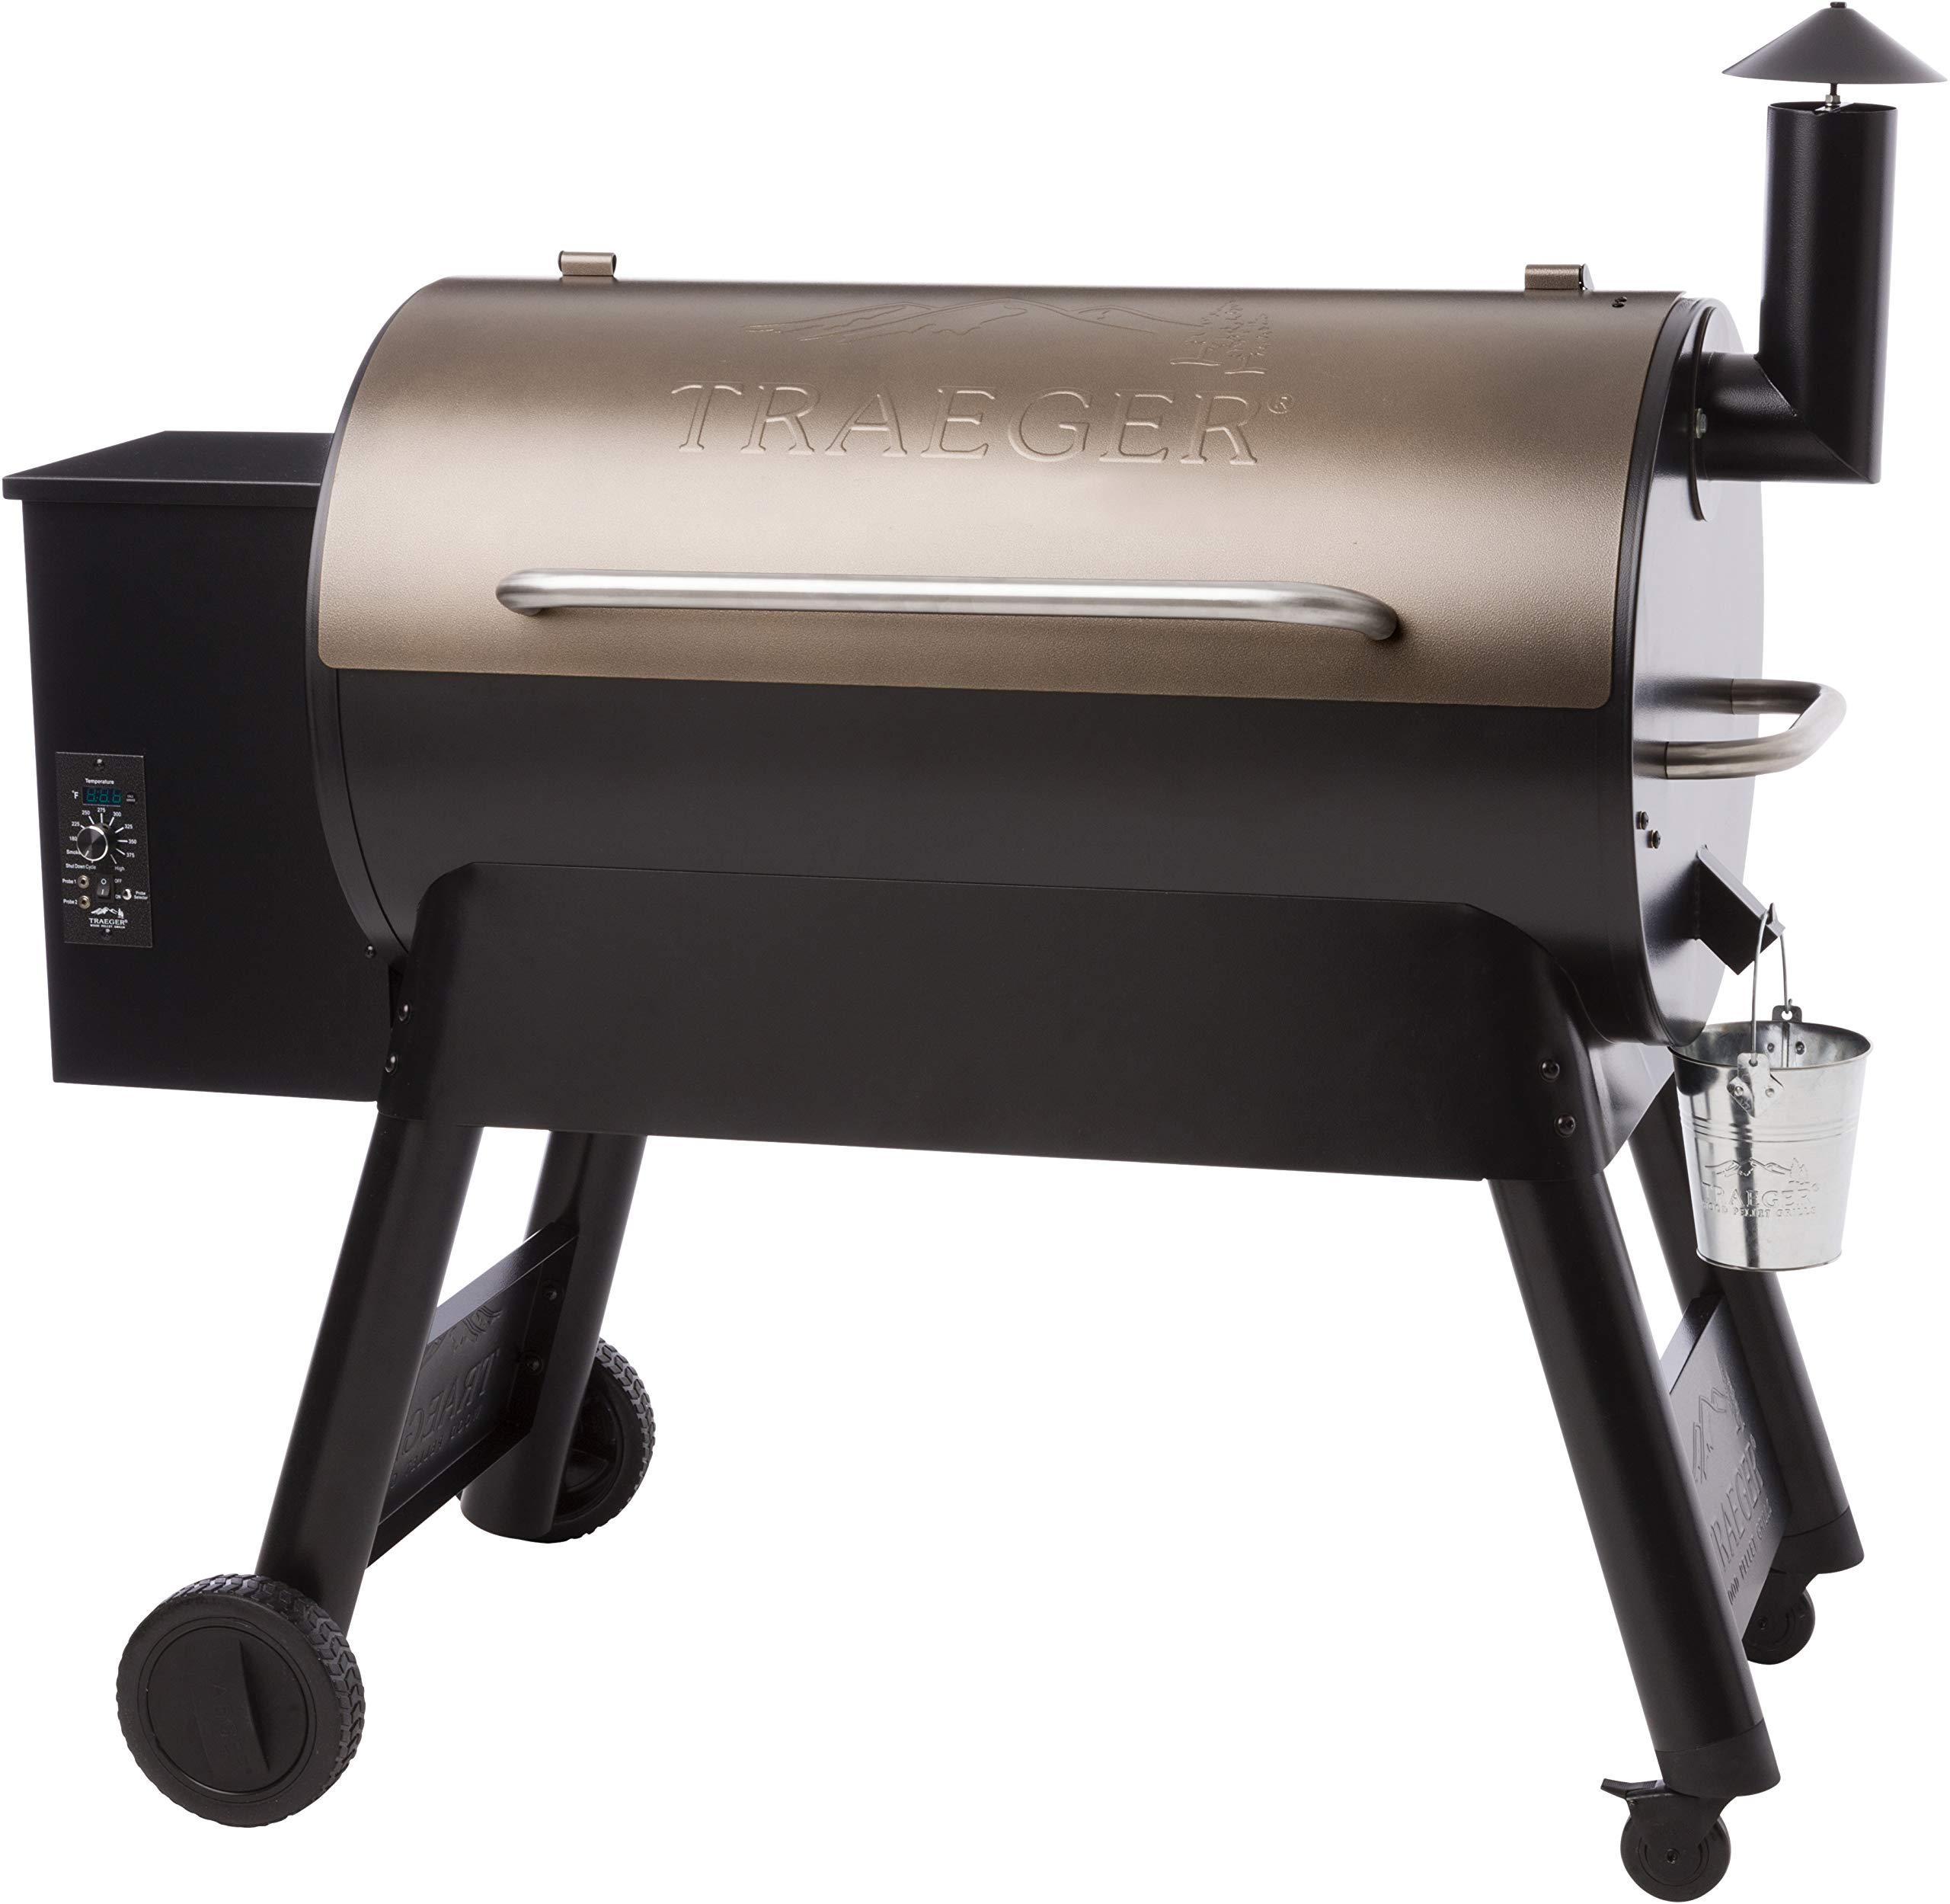 Traeger Grills TFB88PZBO Pro Series 34 Pellet Grill and Smoker, 884 Sq. In. Cooking Capacity, Bronze by Traeger